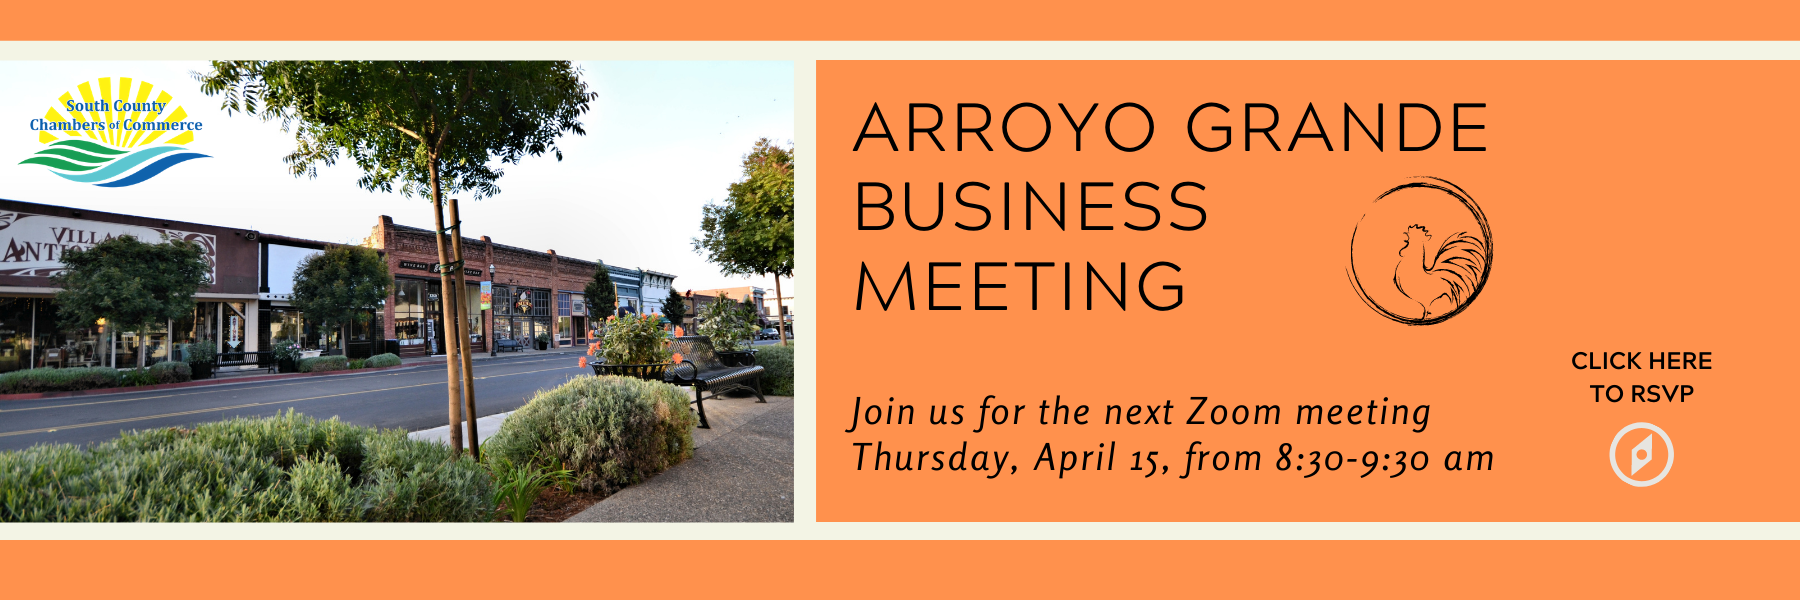 Web-panel-for-Arroyo-Grande-business-meeting(6).png